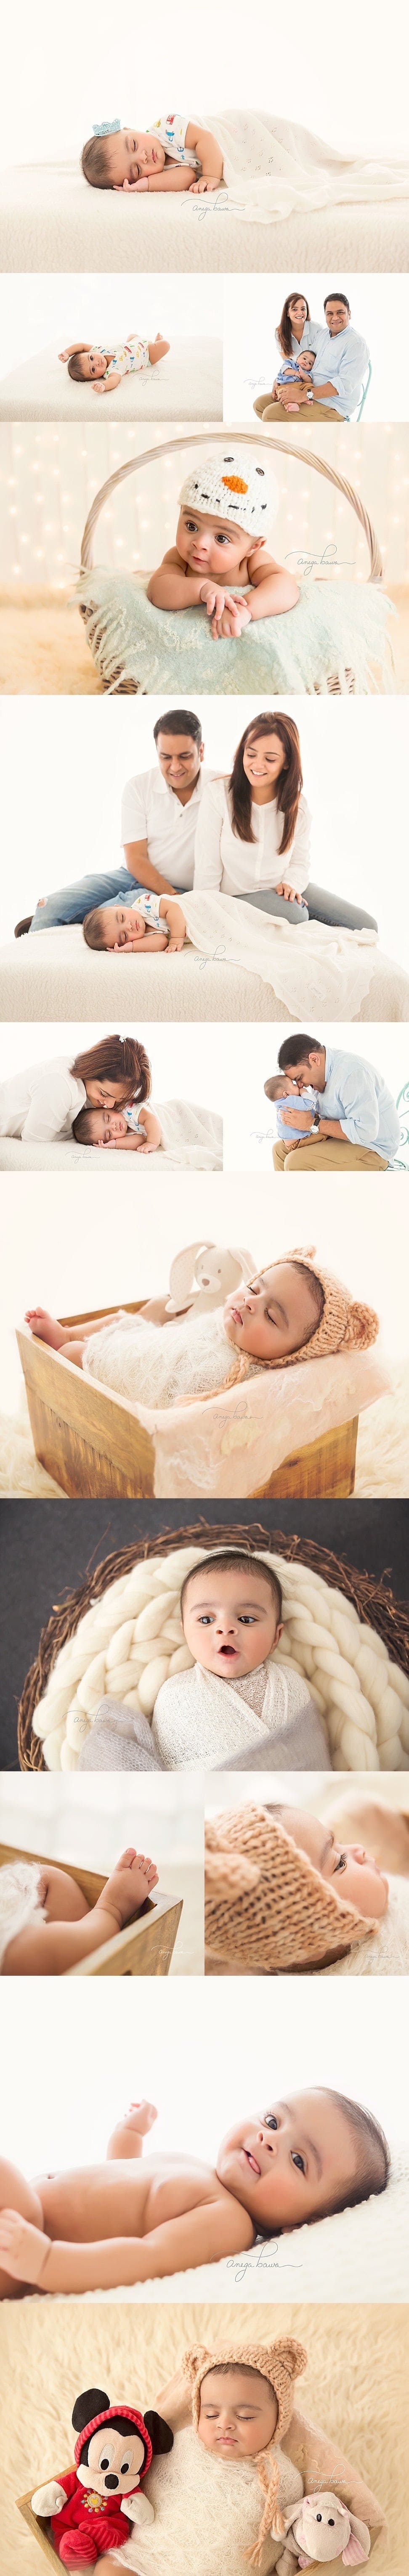 Baby Photoshoot India - Session of a 4-month boy